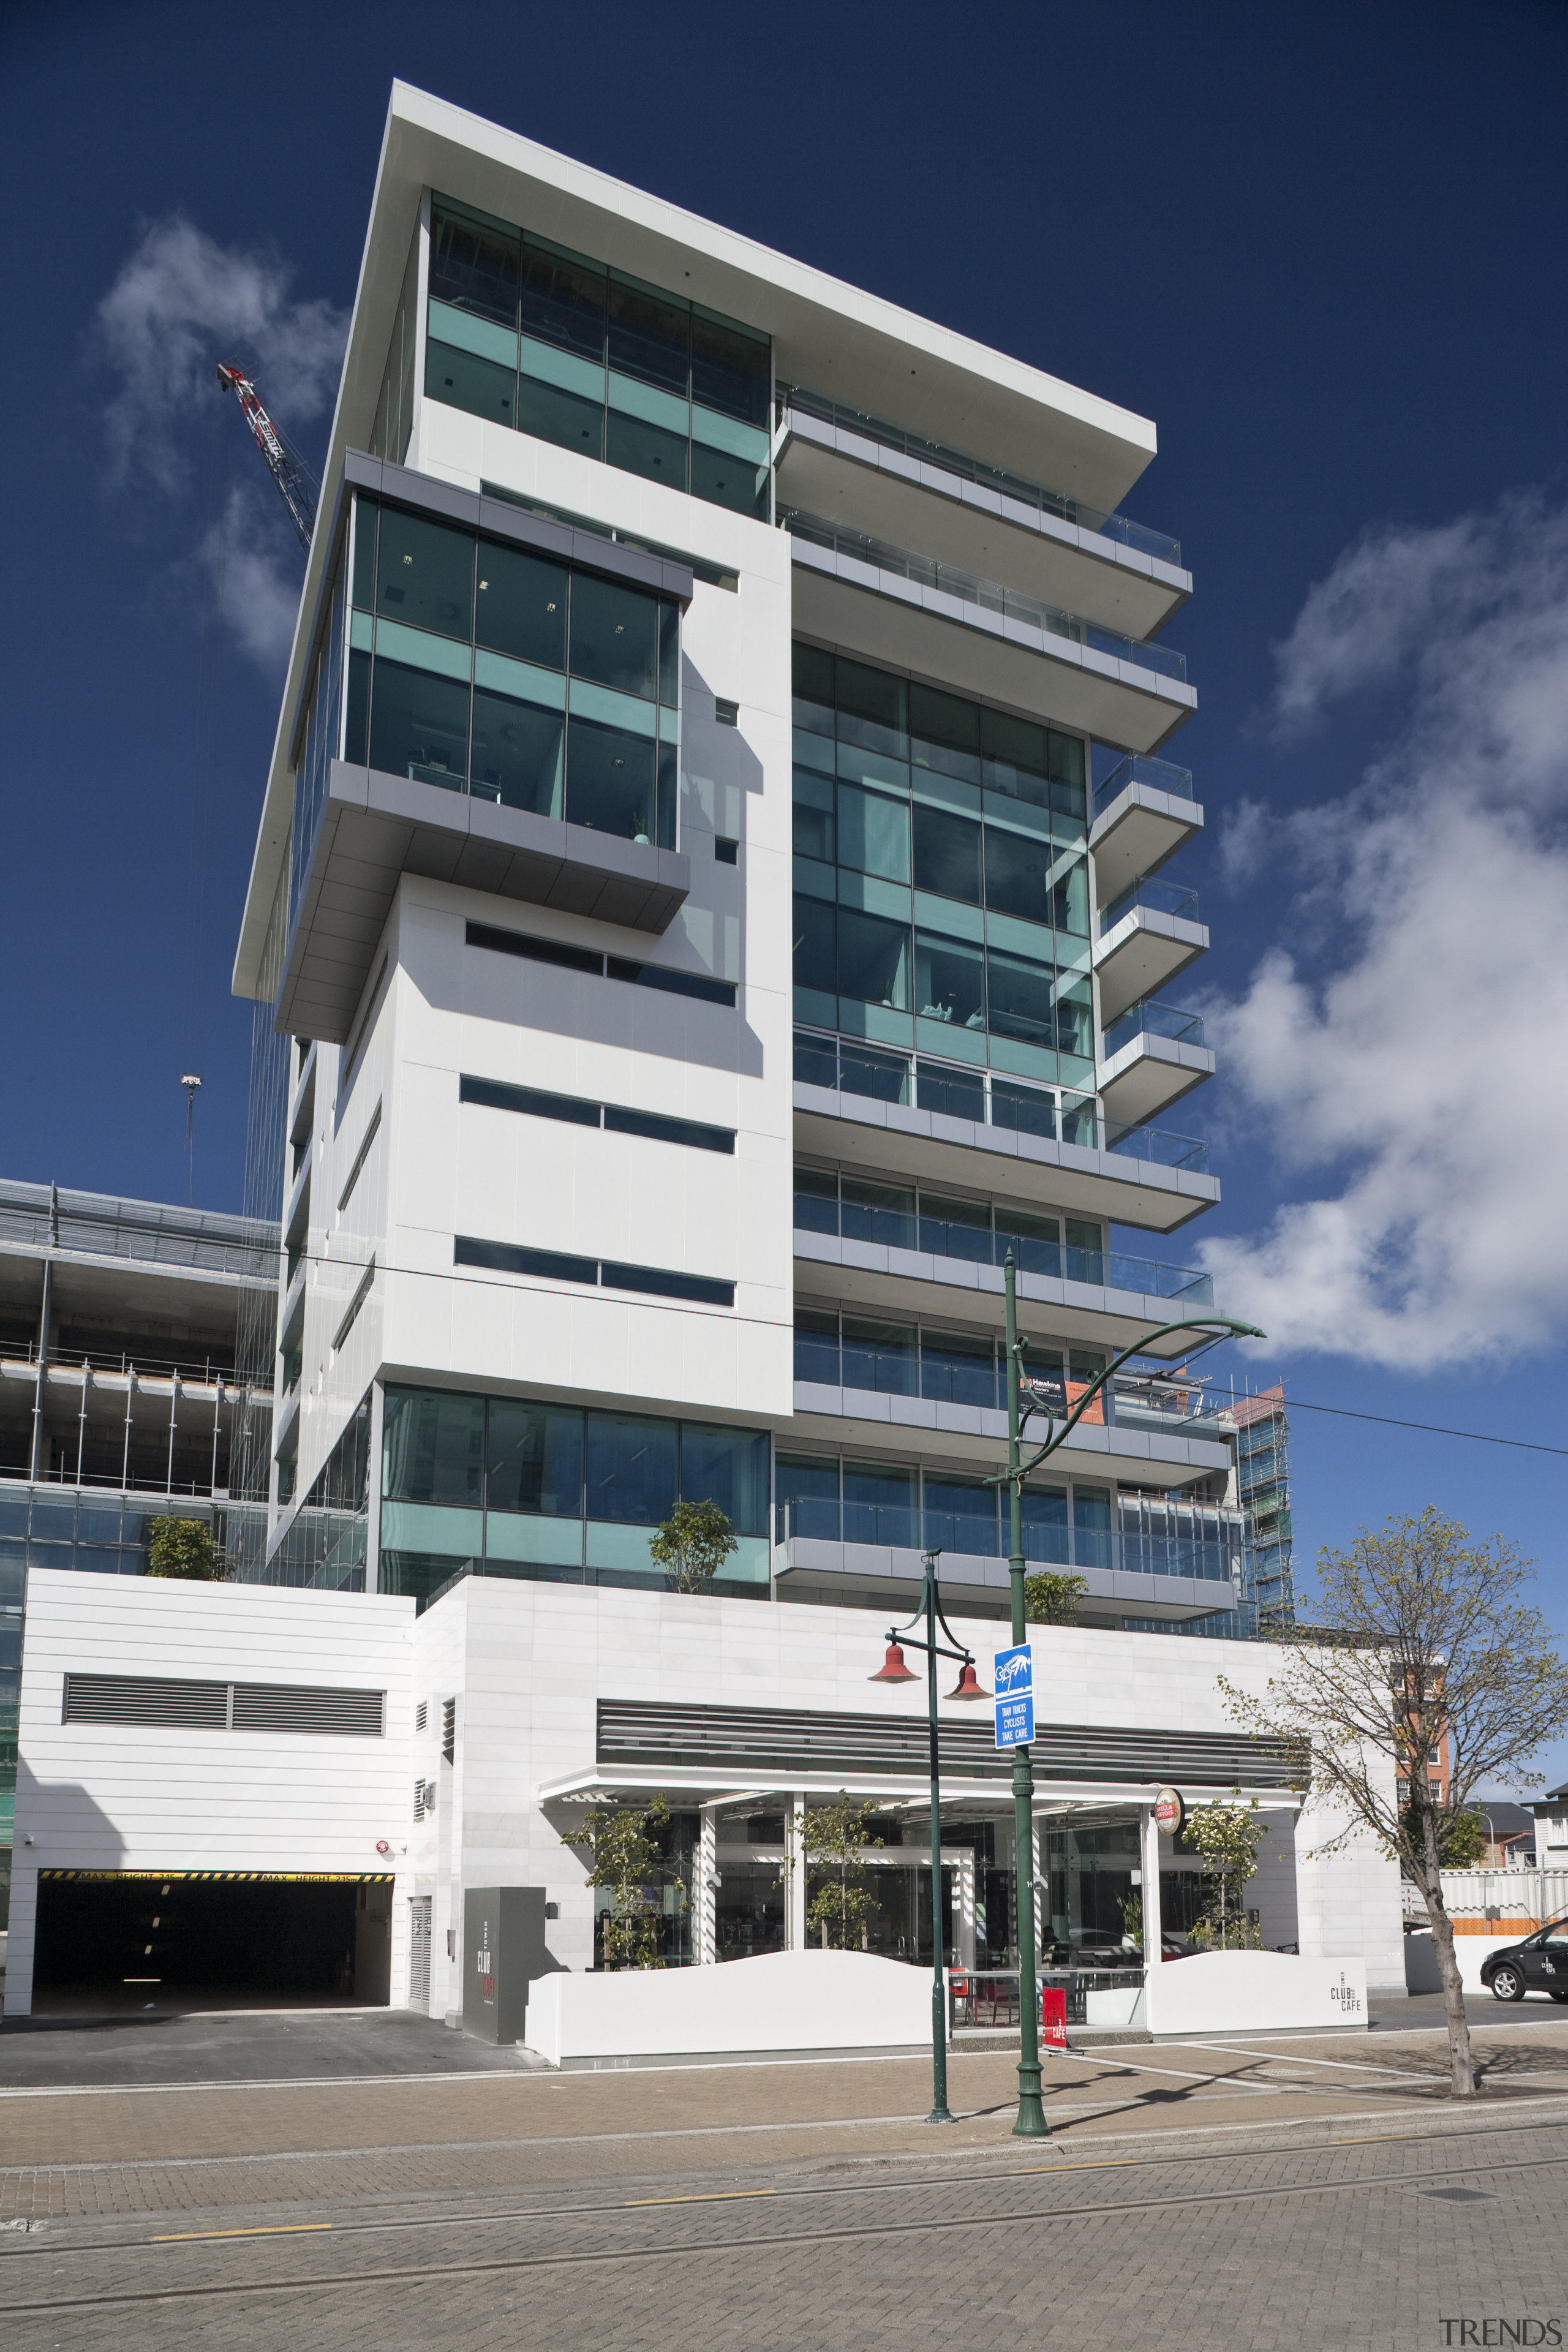 View of the Club Tower offices in Christchurch, apartment, architecture, building, commercial building, condominium, corporate headquarters, elevation, facade, headquarters, house, metropolitan area, mixed use, real estate, residential area, sky, gray, blue